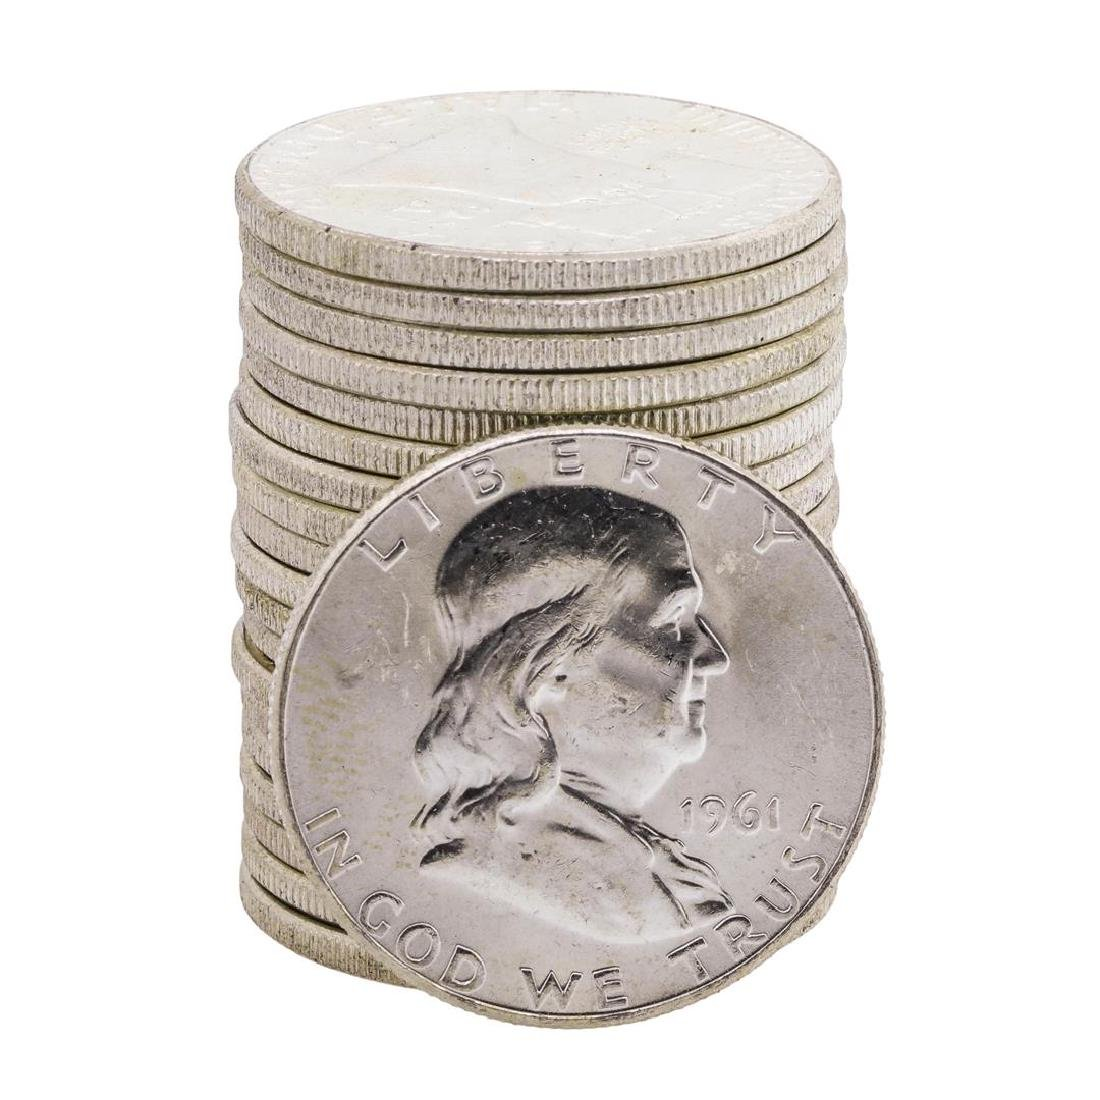 Roll of (20) 1961 Brilliant Uncirculated Franklin Half